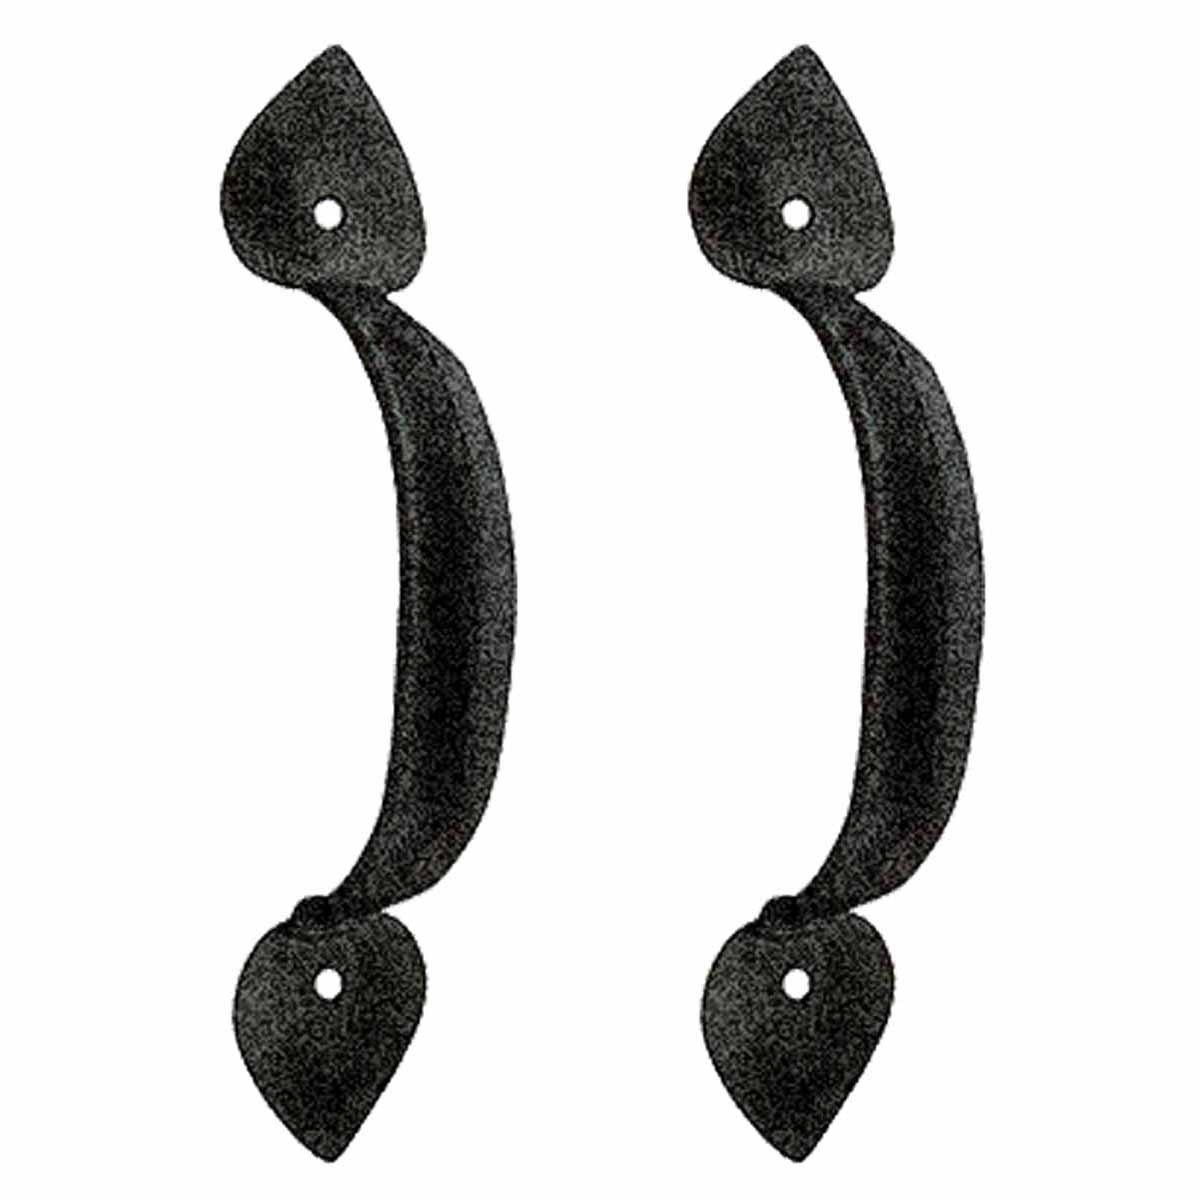 Black Wrought Iron Pull For Drawer Or Door Heart 6.785in H Set Of 2